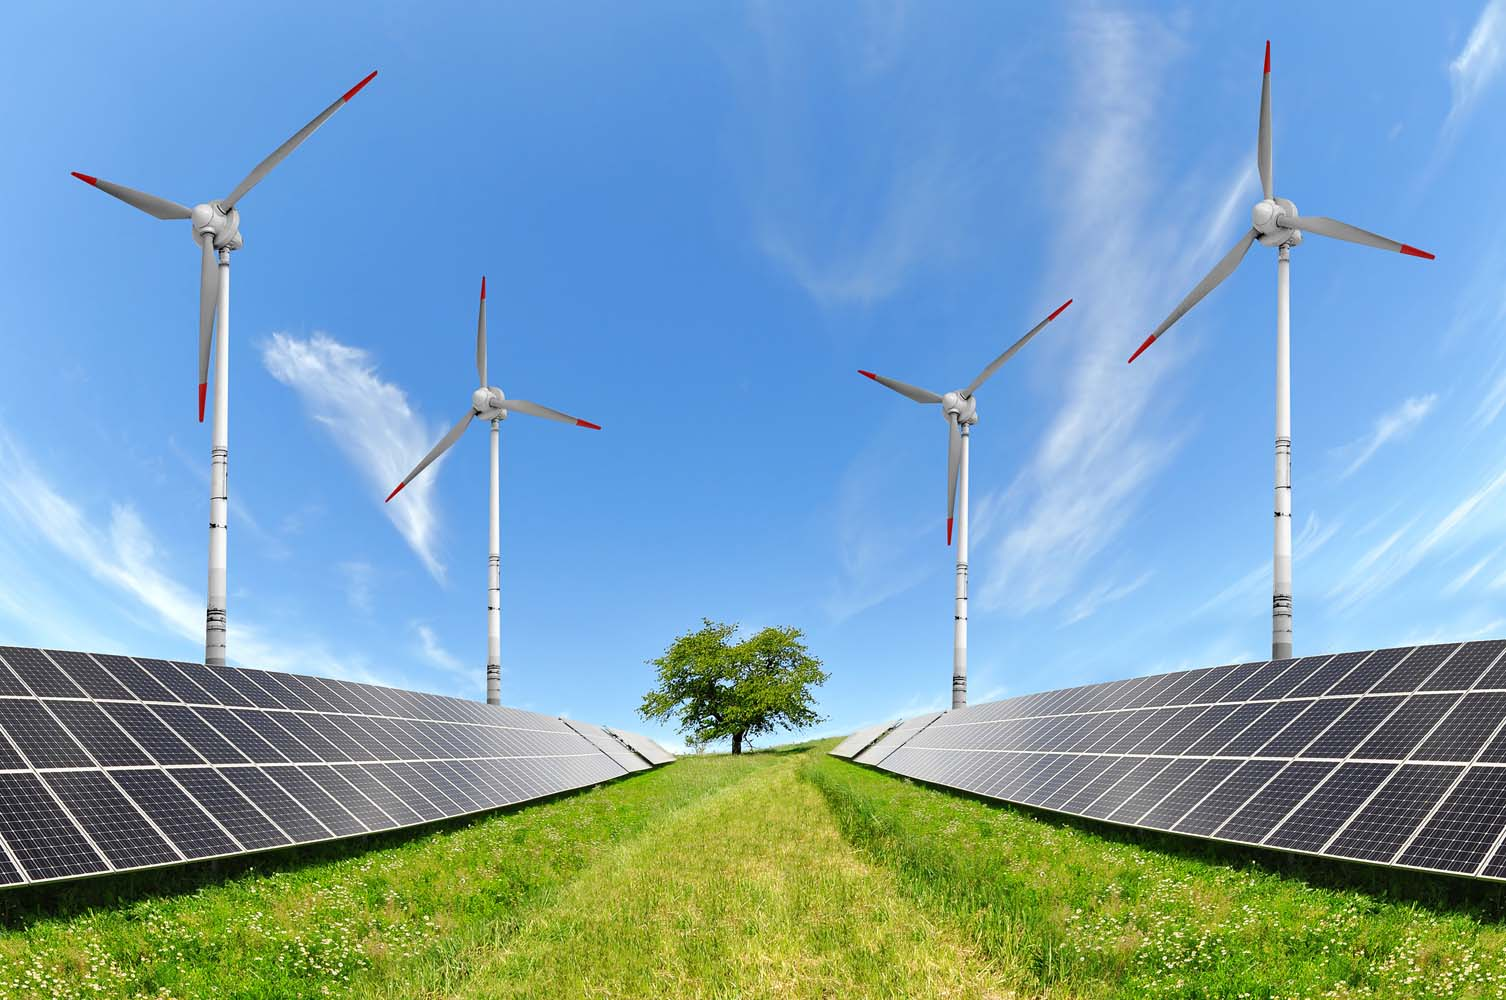 bigstock-Solar-energy-panels-and-wind-t-90315959-Copy.jpg